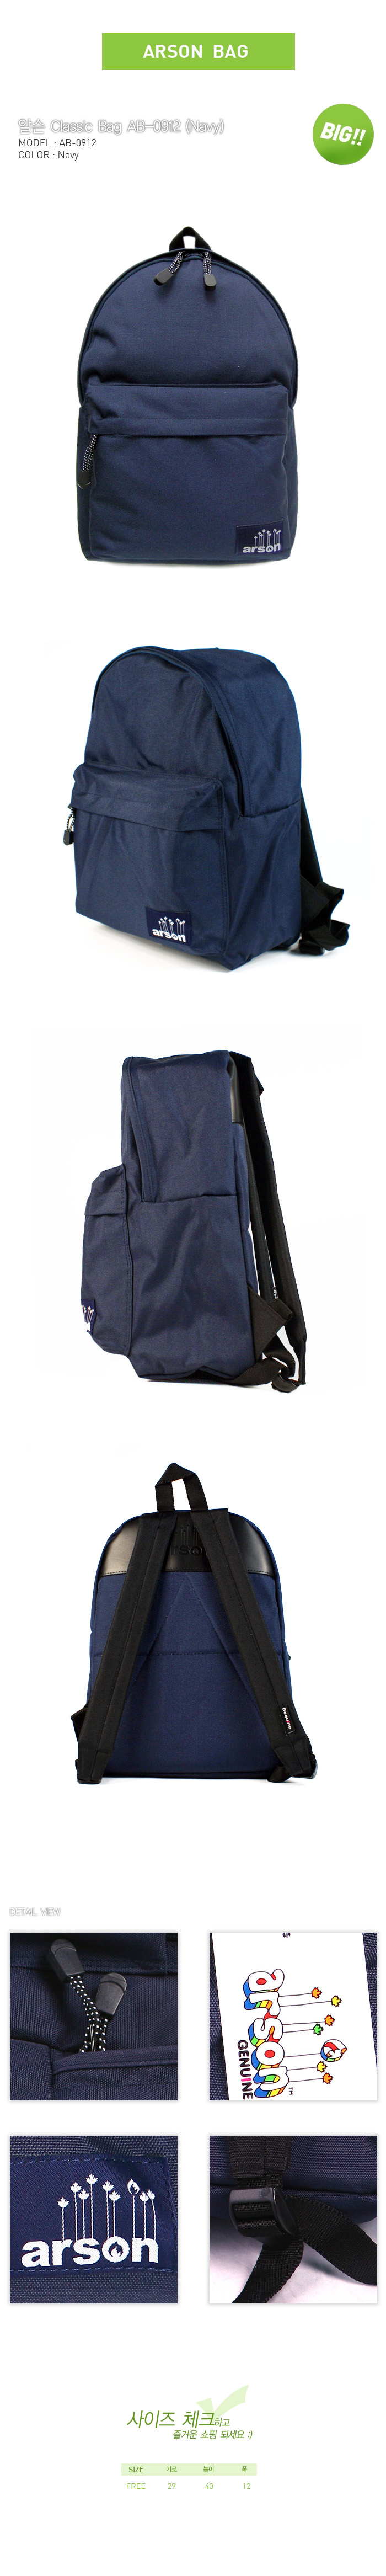 [ ARSON ] AB-0912 (Navy)/Backpack School Bag